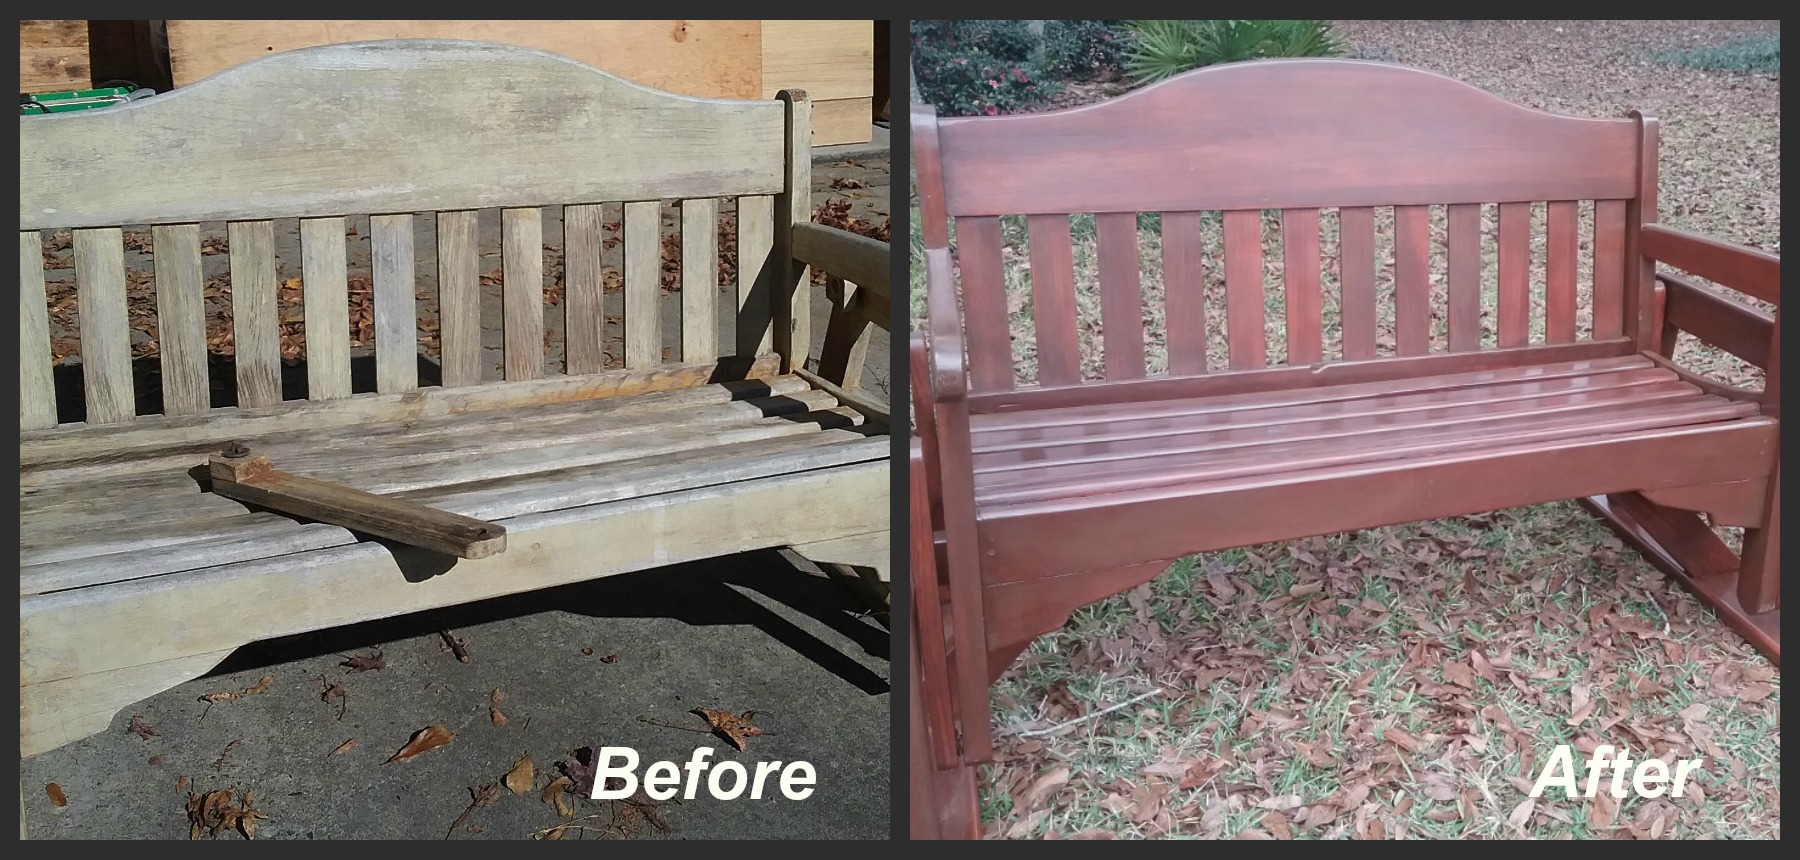 Refinished glider bench